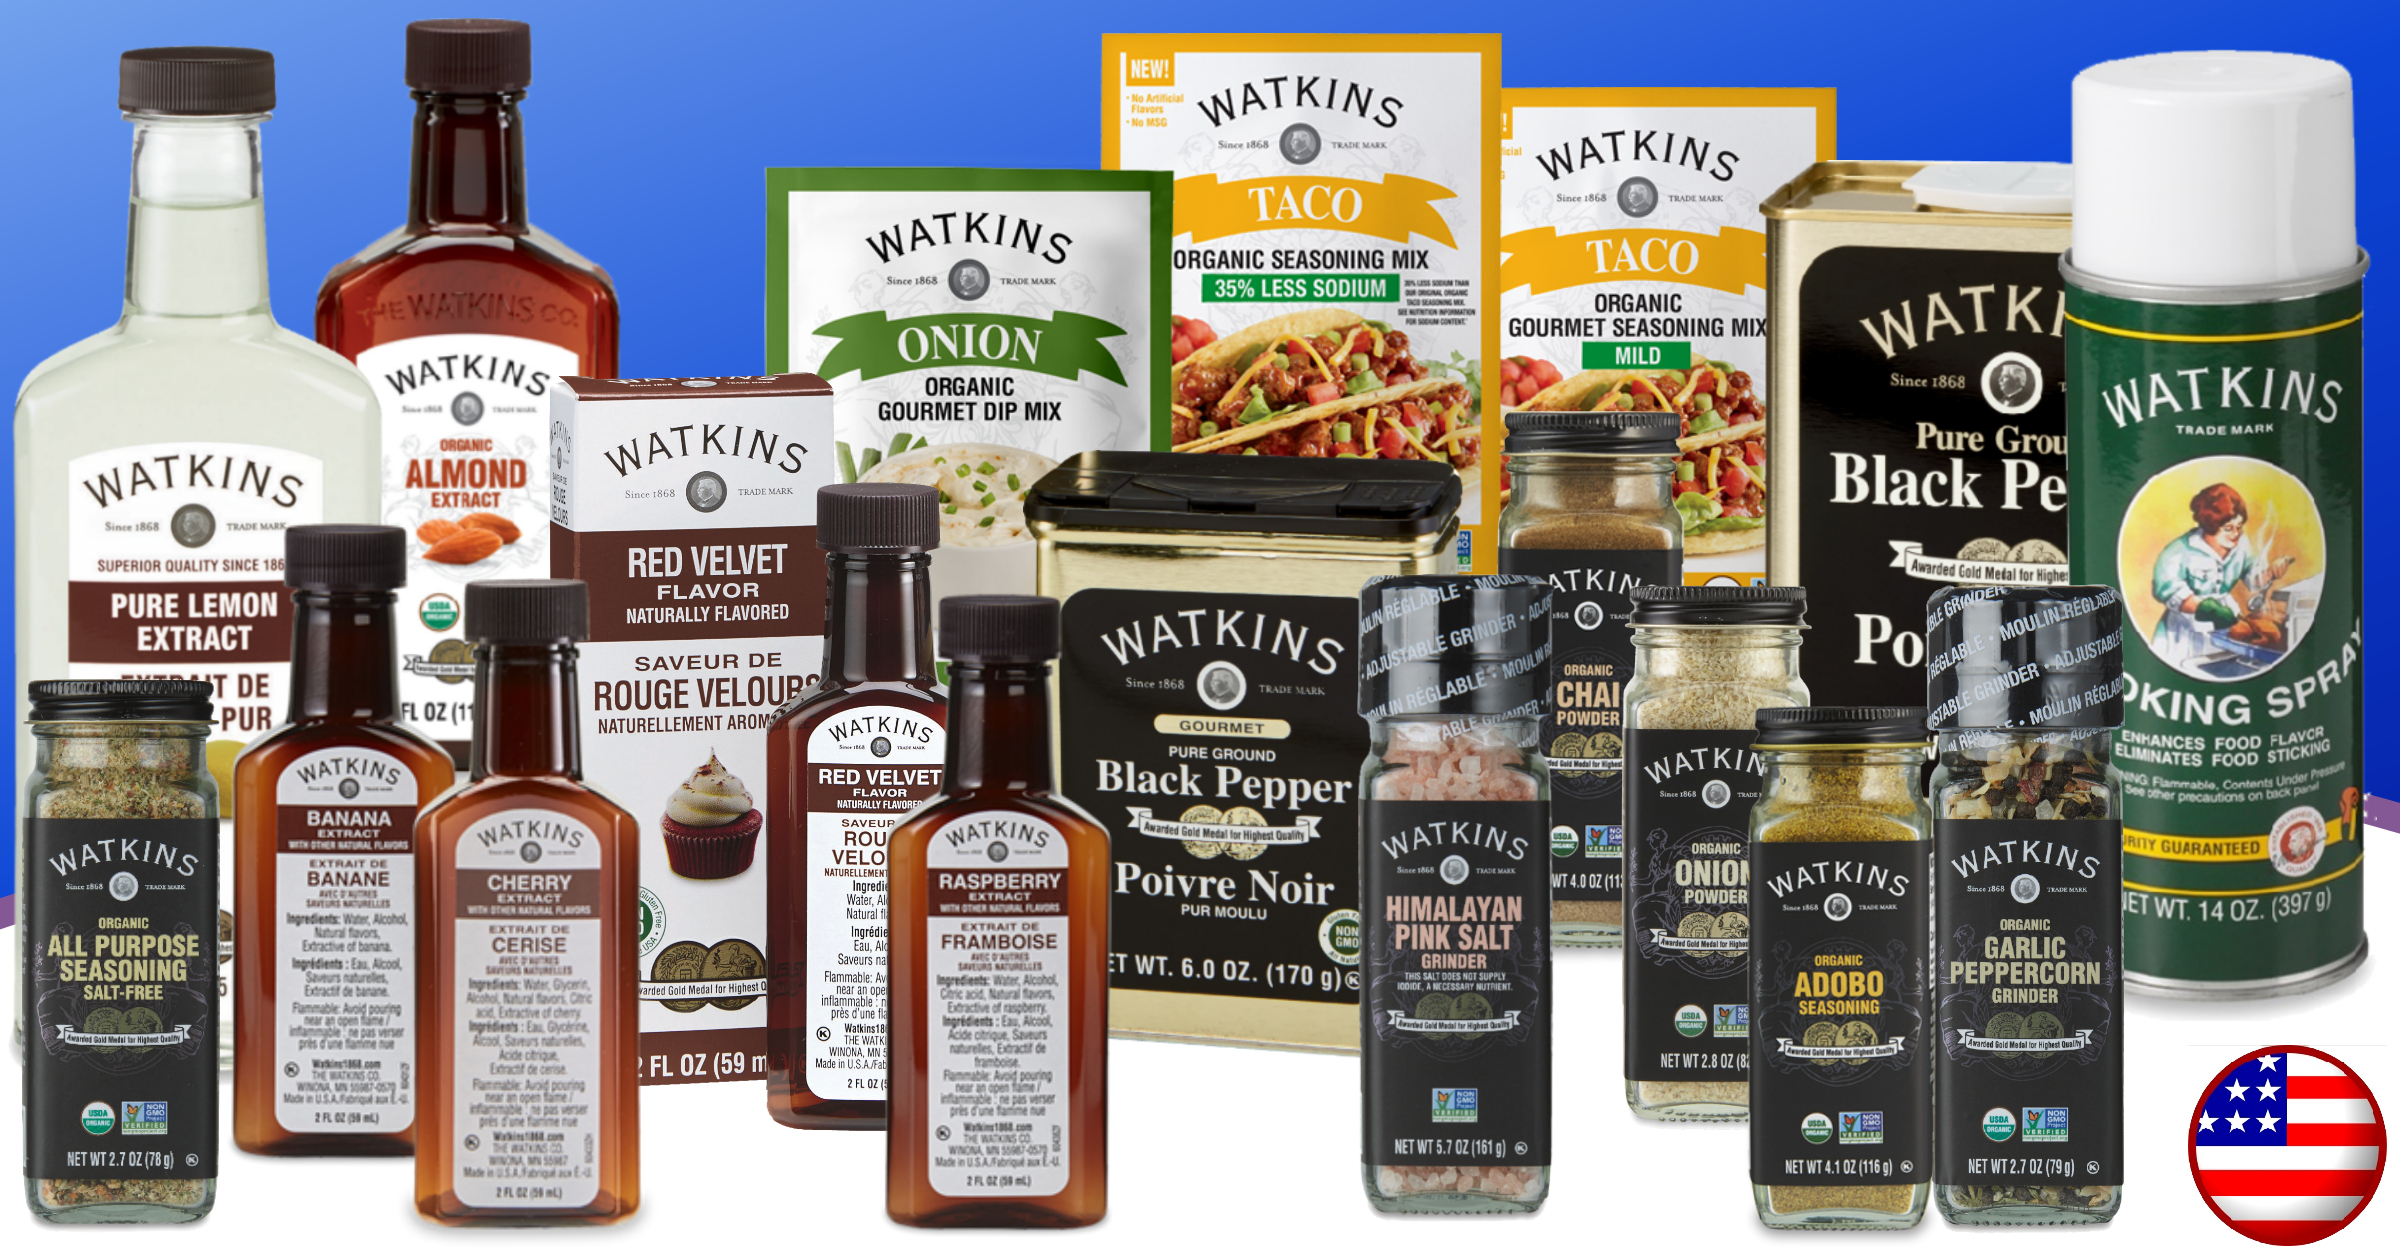 Watkins September Featured Products